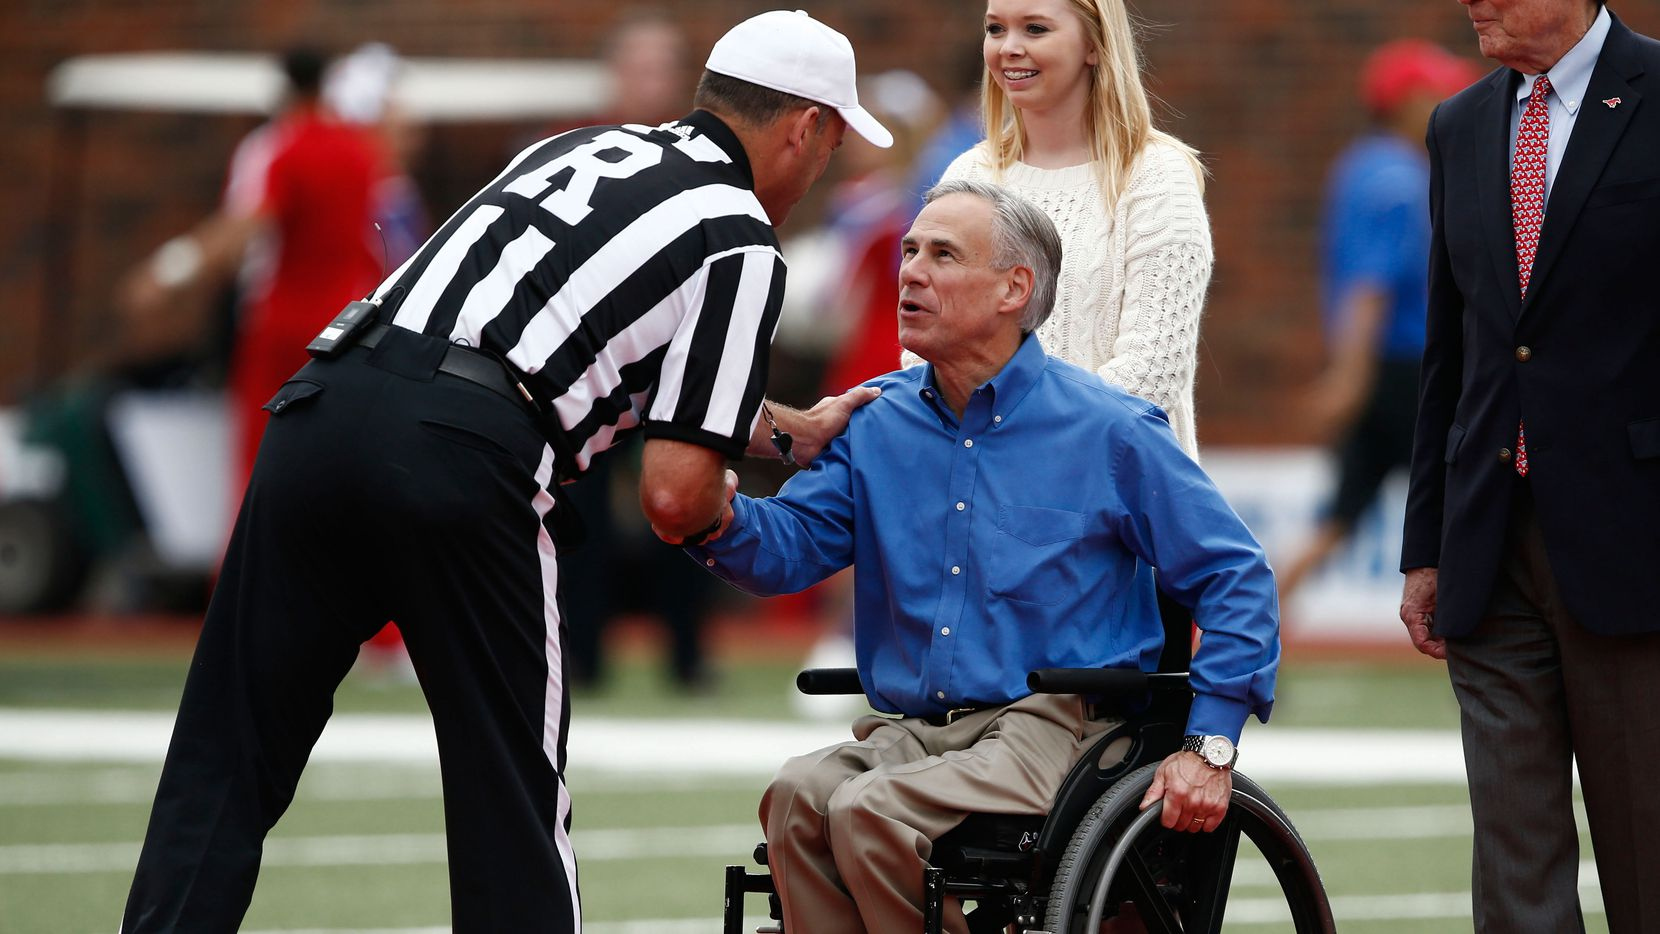 Greg Abbott, then attorney general of Texas, greets an official at midfield before the college football game between the Southern Methodist Mustangs and the Temple Owls at Gerald J. Ford Stadium in Dallas on Oct. 26, 2013.